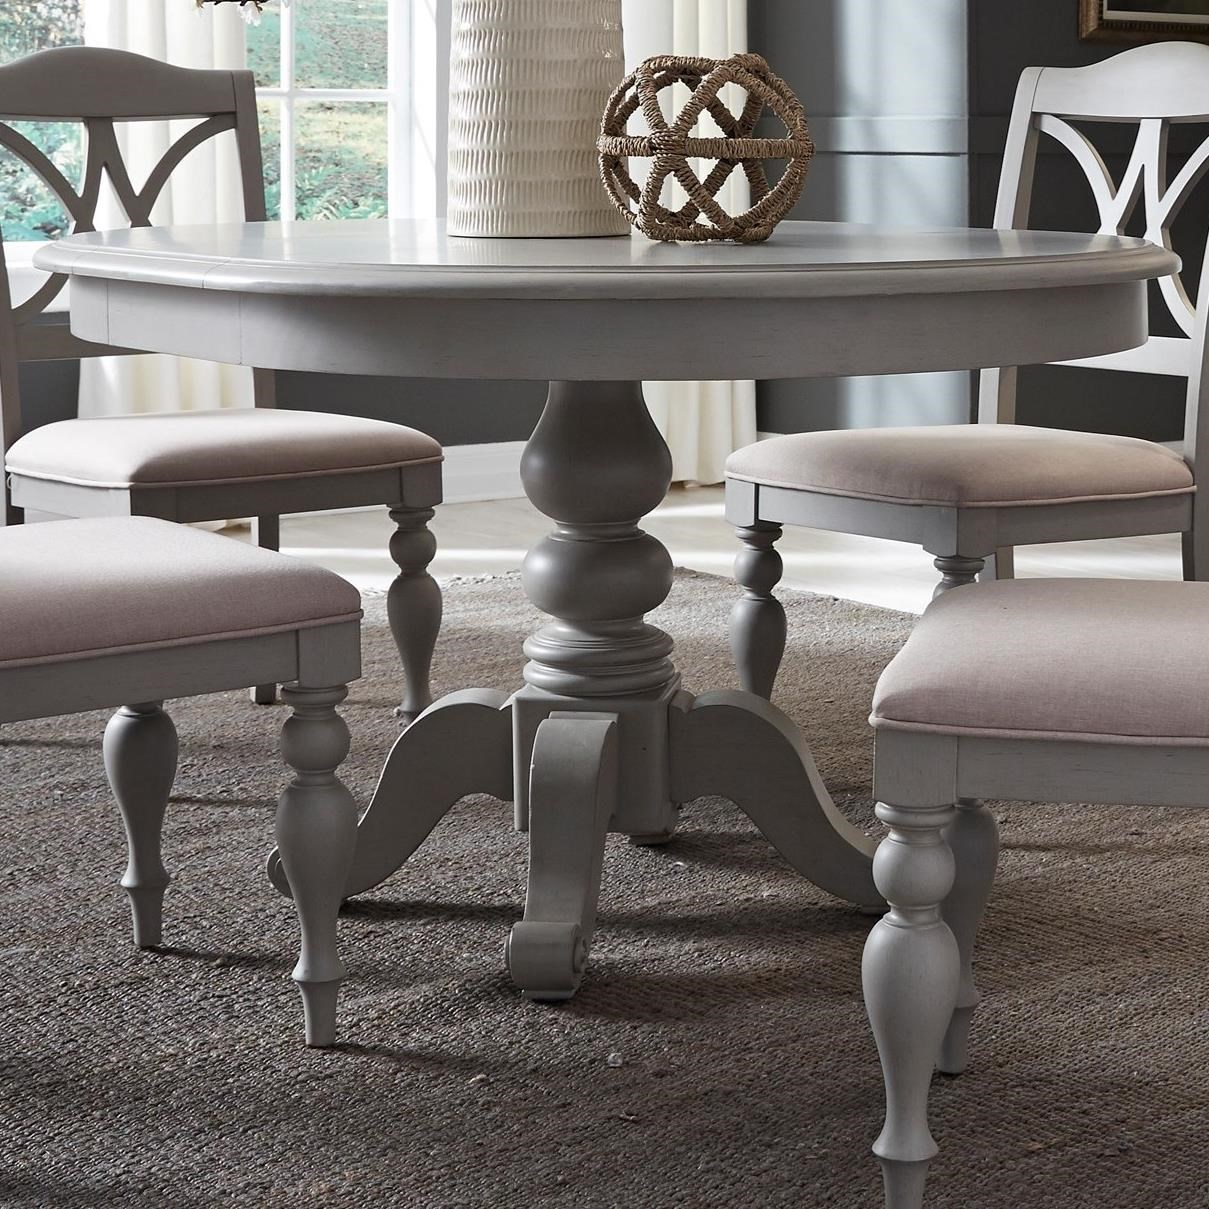 Summer House Dining Round Pedestal Table by Liberty Furniture at Northeast Factory Direct